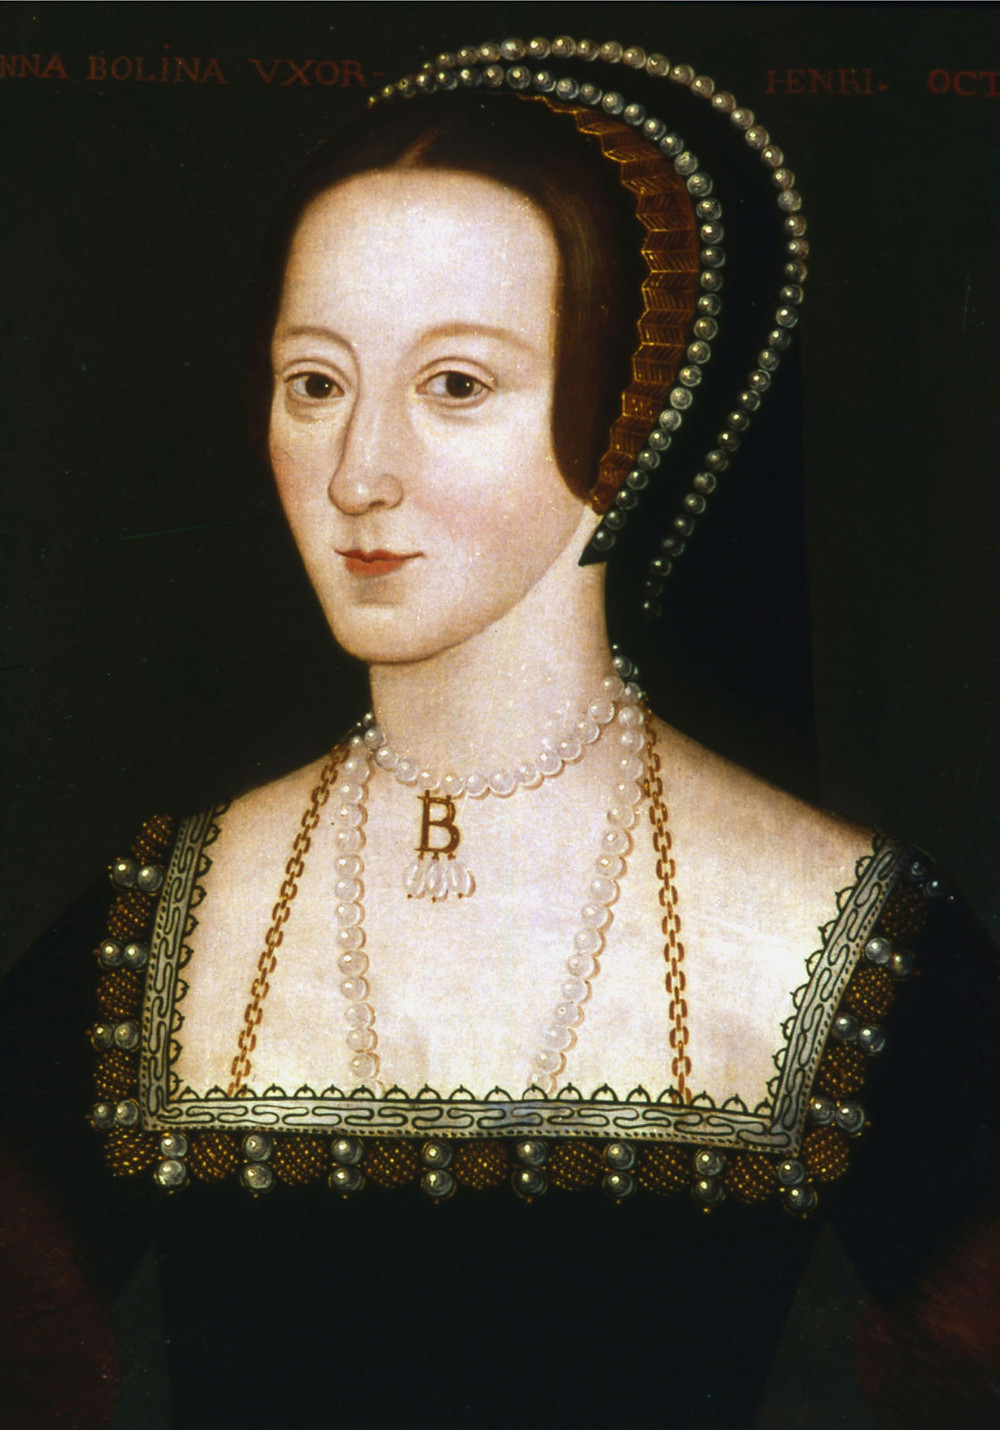 Anne Boleyn, late 16th century copy of a lost original of c.1533-1536  -- Henry VIII's doomed second wife and mother of Queen Elizabeth I